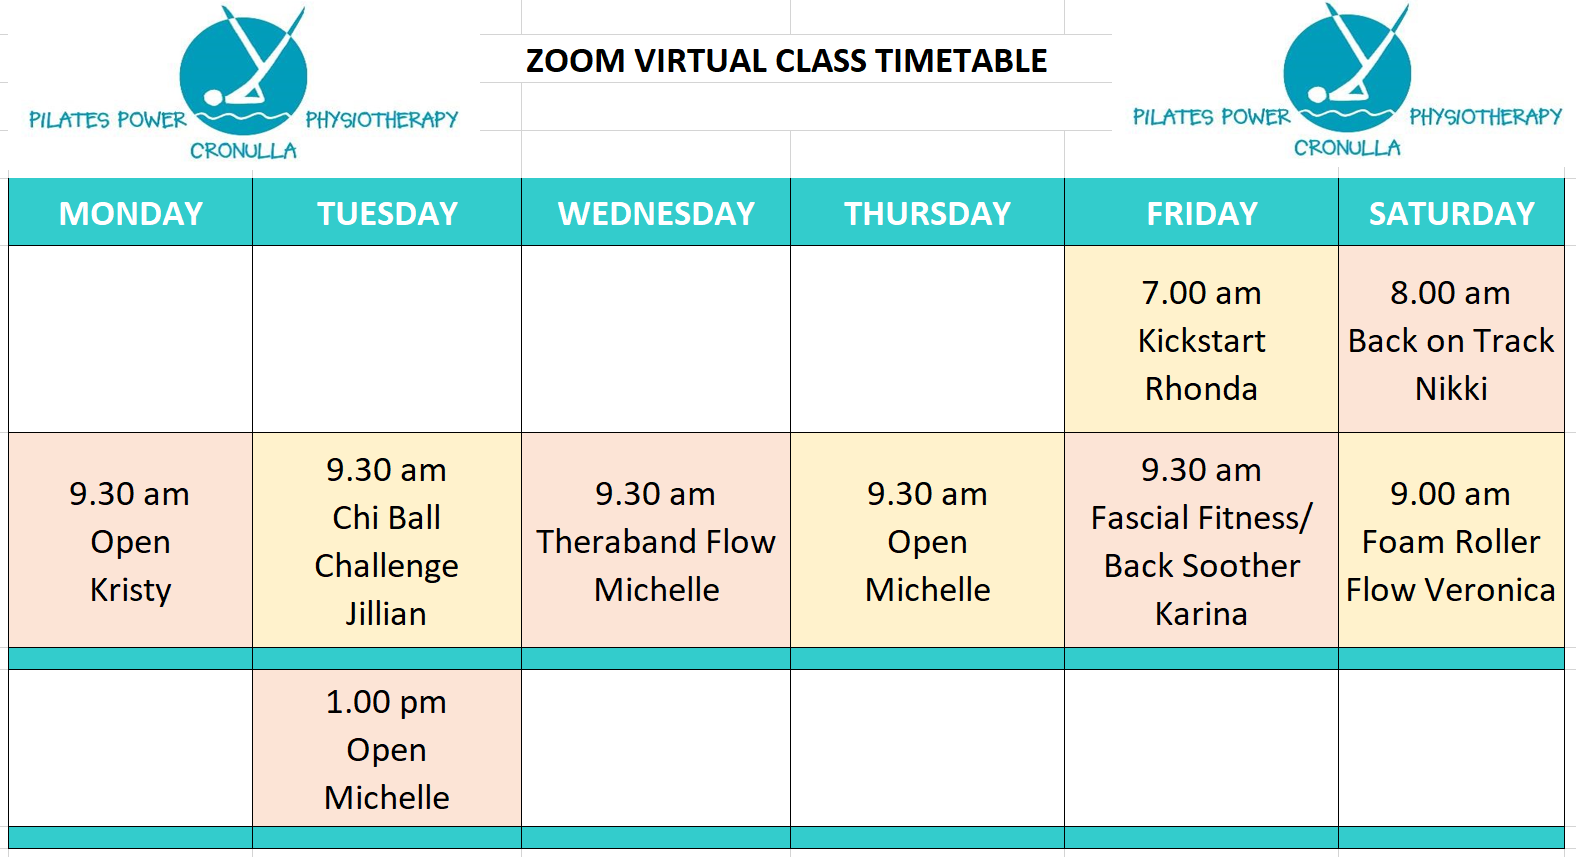 ZOOM Classes as at 14-05-20